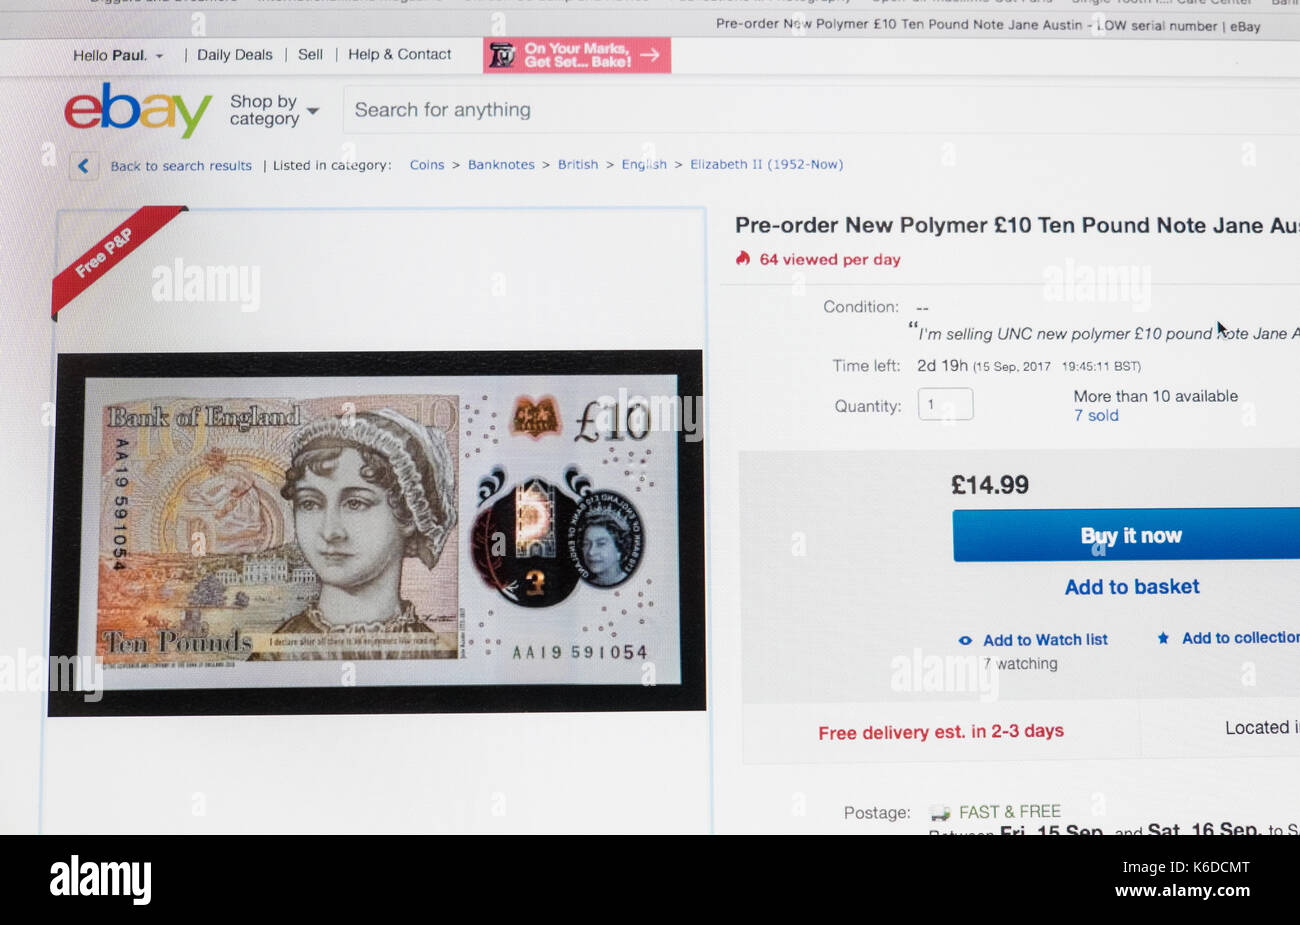 Uk 12th Sep 2017 Ebay Listing For New Ten Pound Note That Will Be Stock Photo Alamy